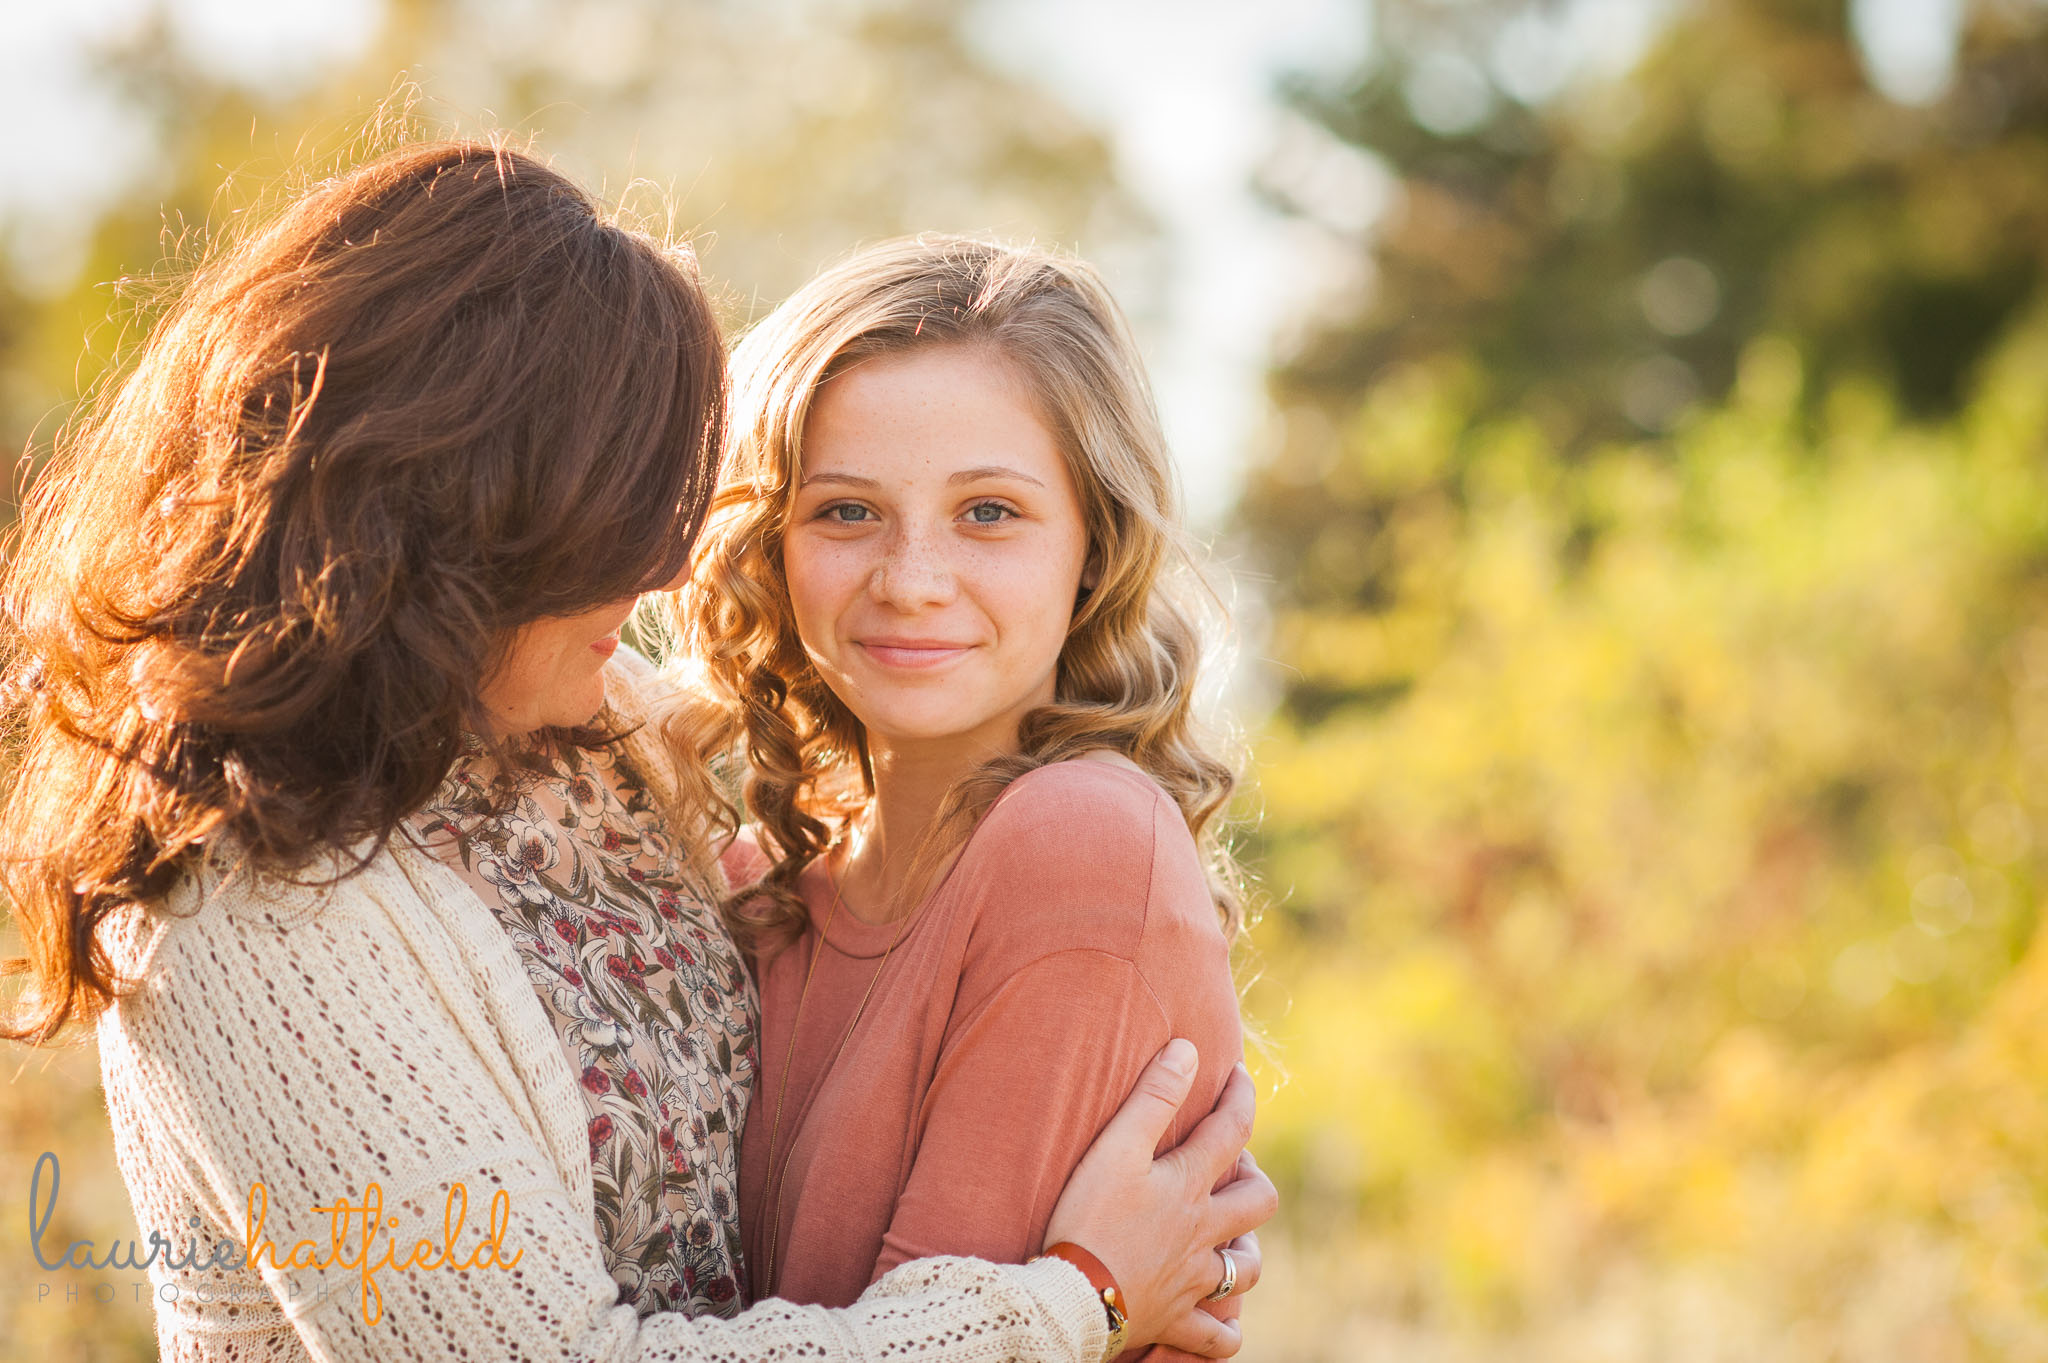 mom and teenage daughter in a field | Mobile family photographer